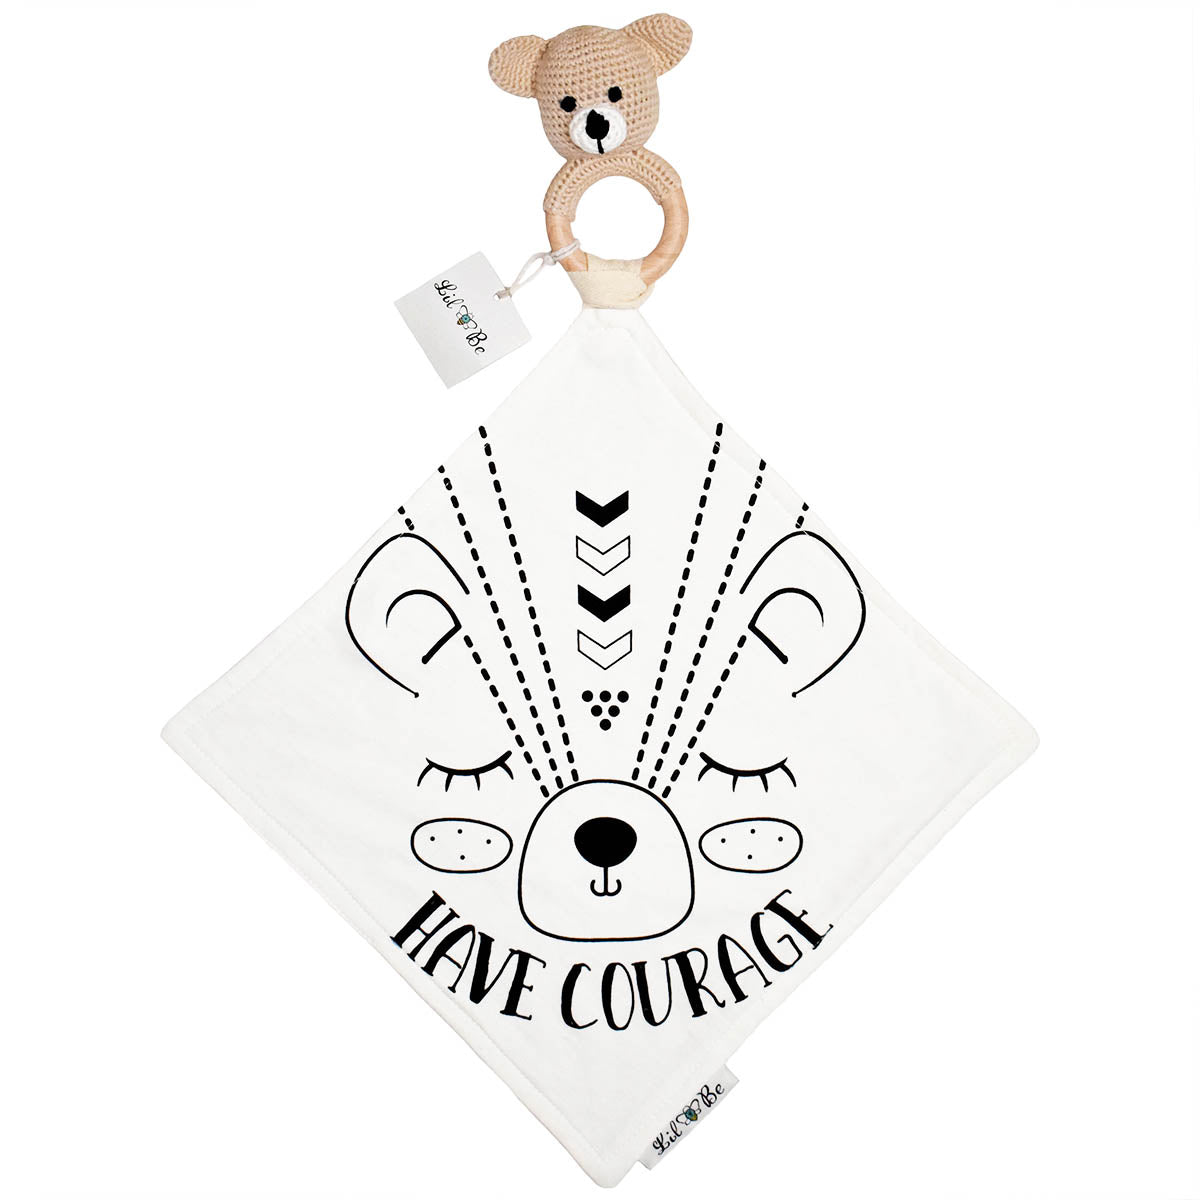 Bear Teether Rattle with Bear Have Courage Graphics Mini Blanket